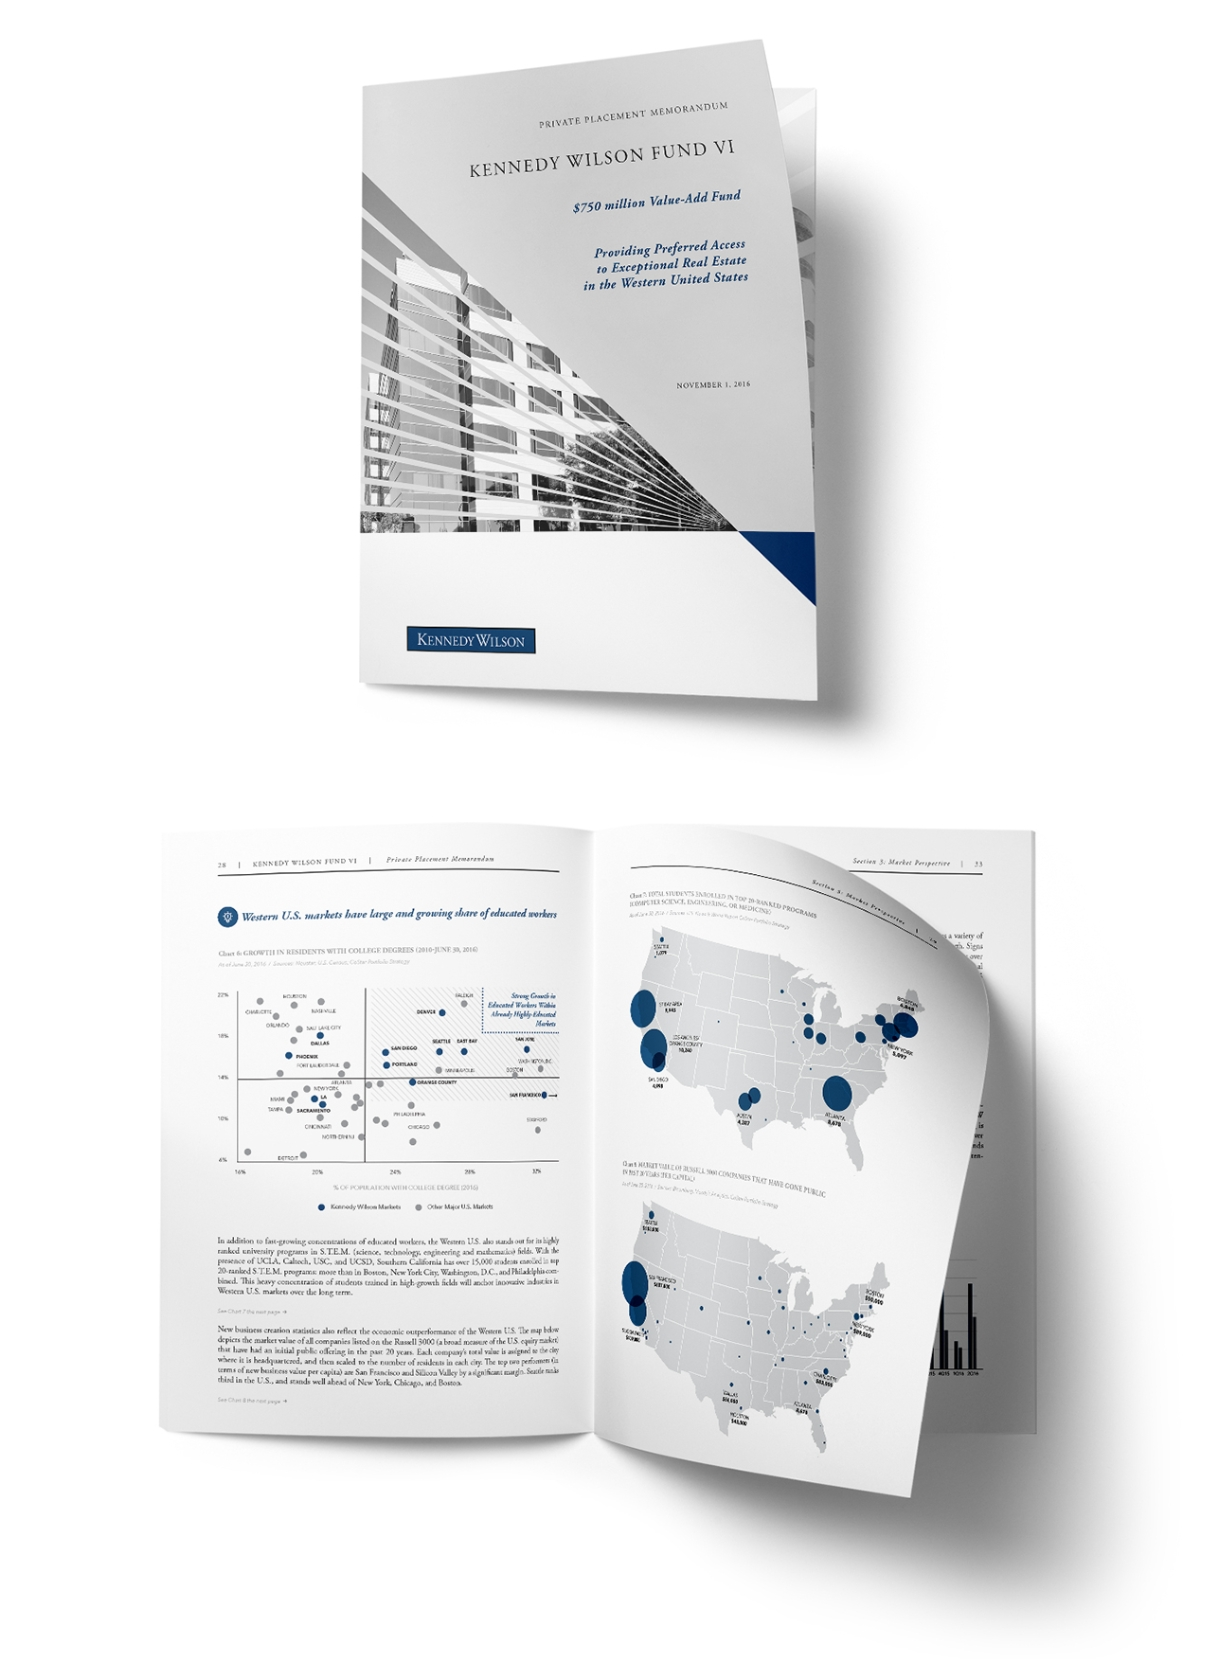 Branding & Communications for Private Equity and Real Estate